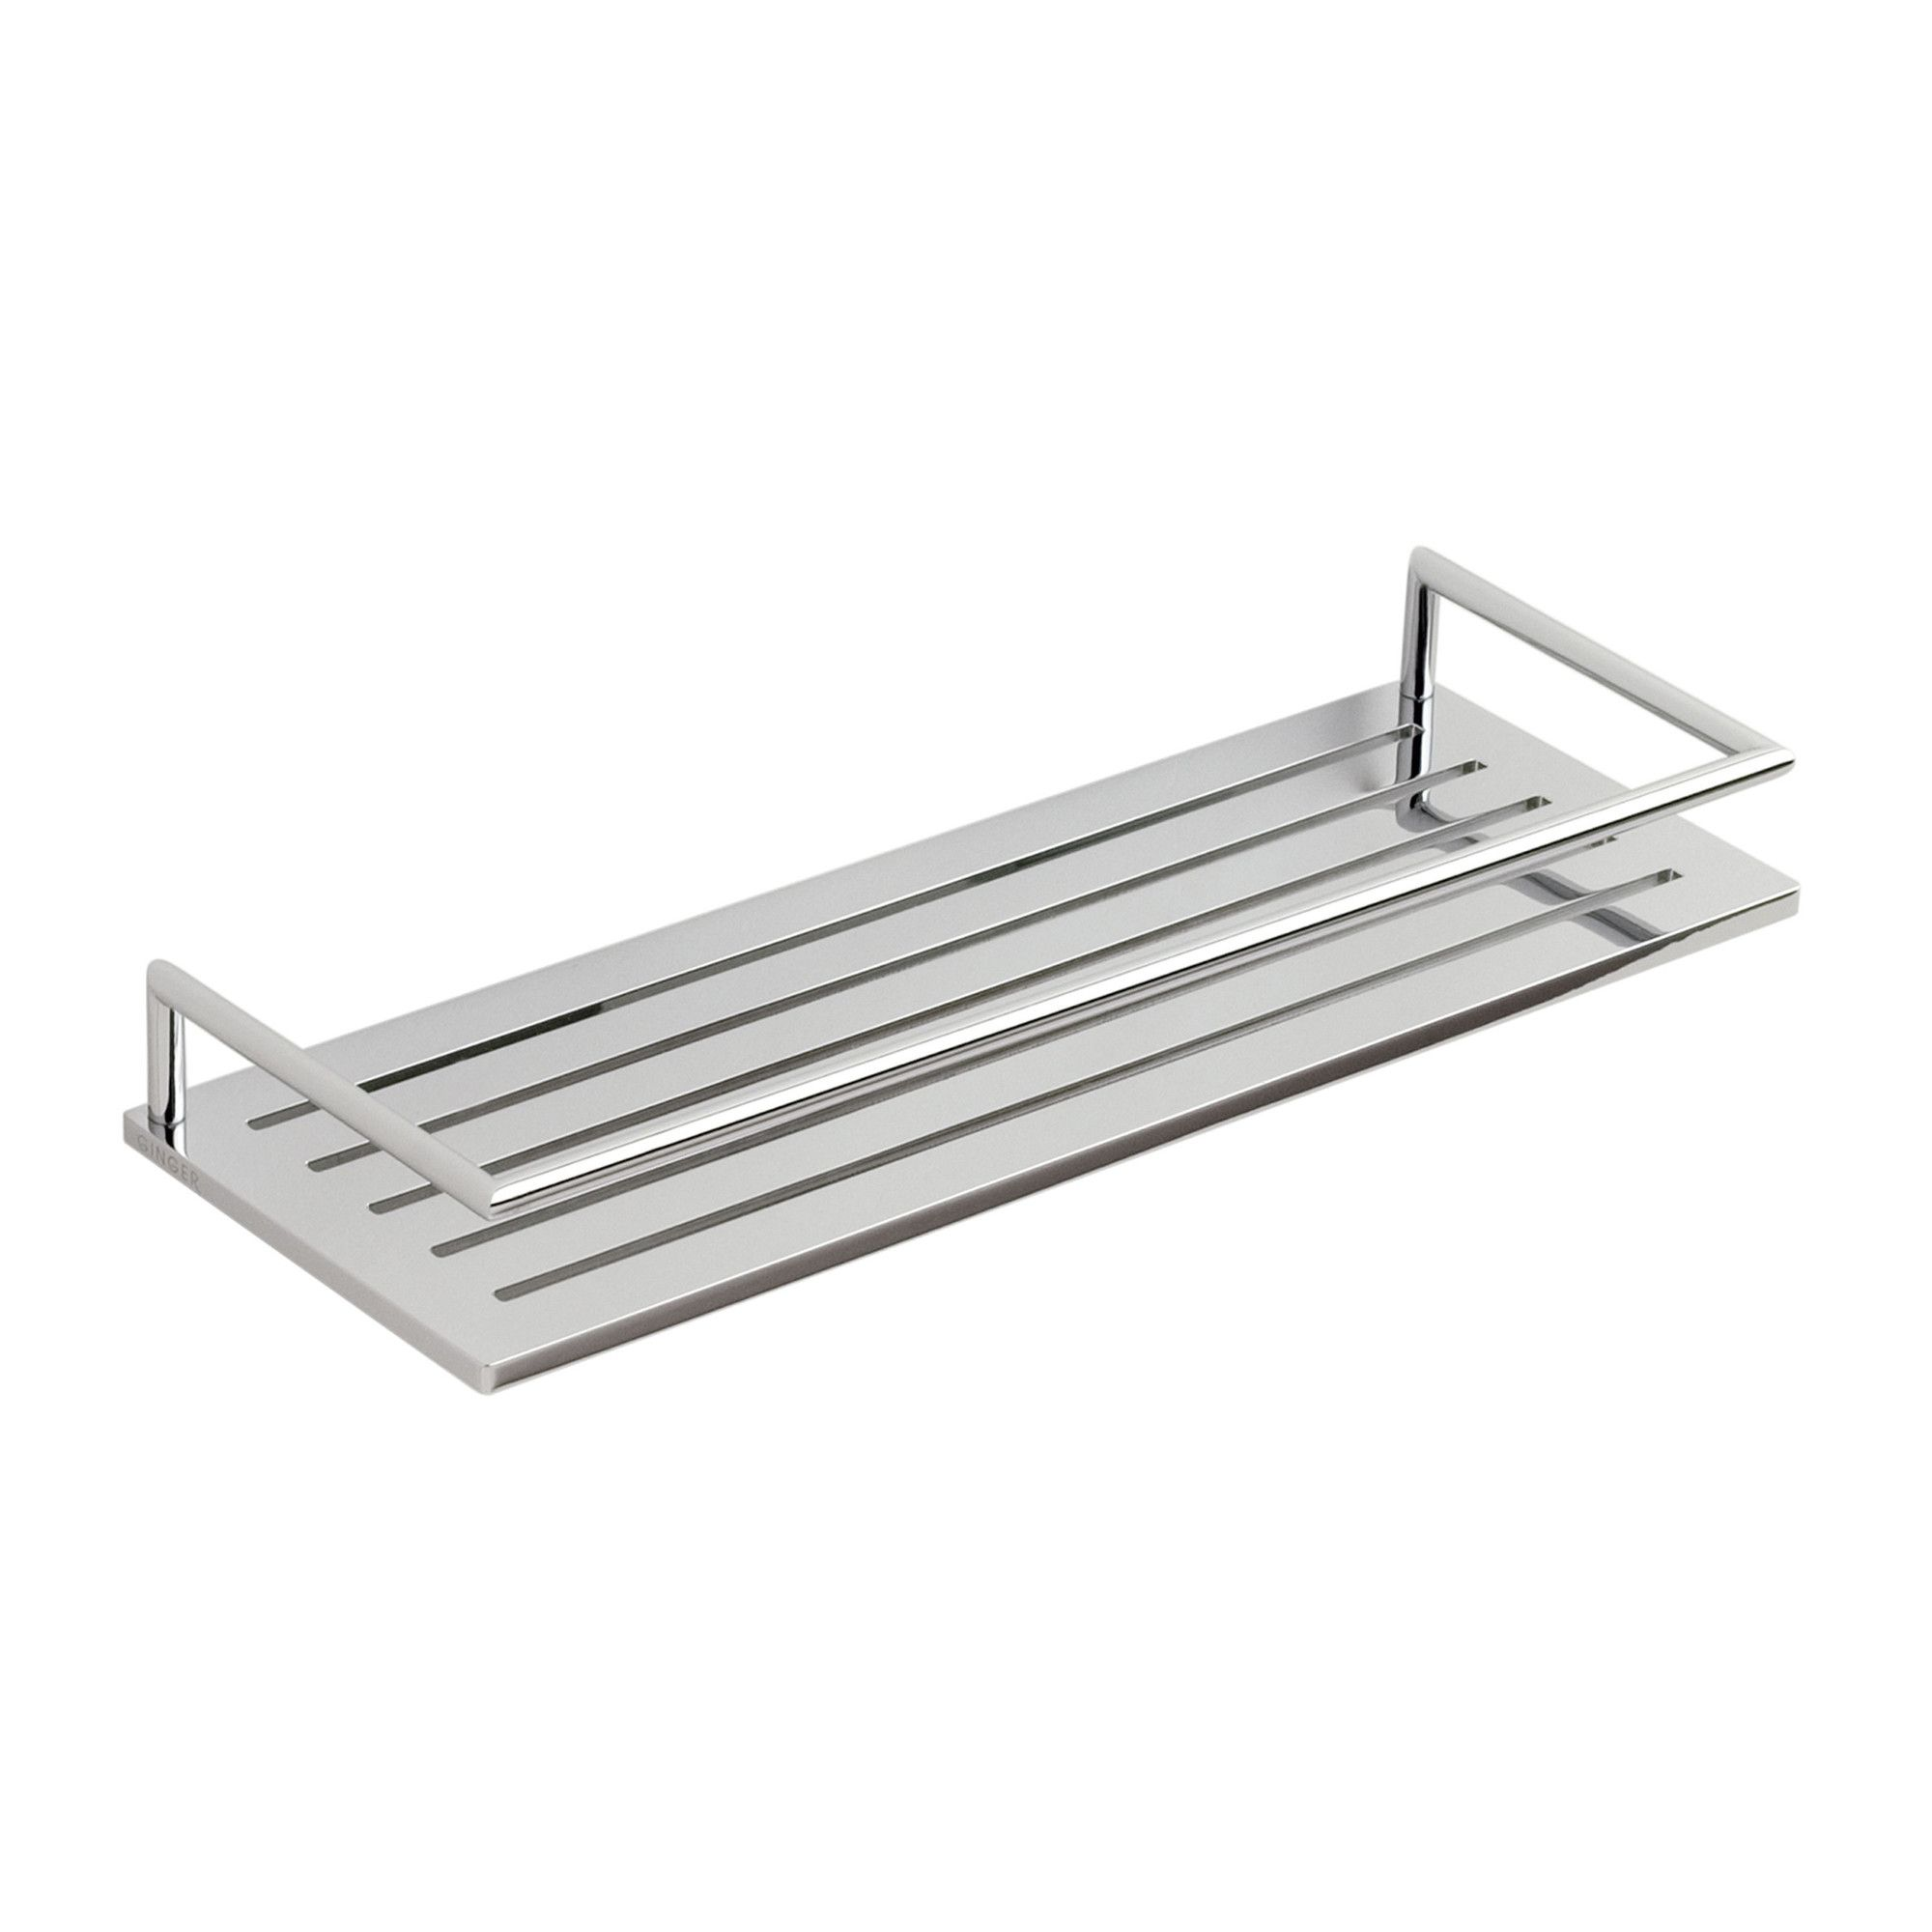 Surface stainless steel shower shelf sheet metal work - Bathroom shelves stainless steel ...